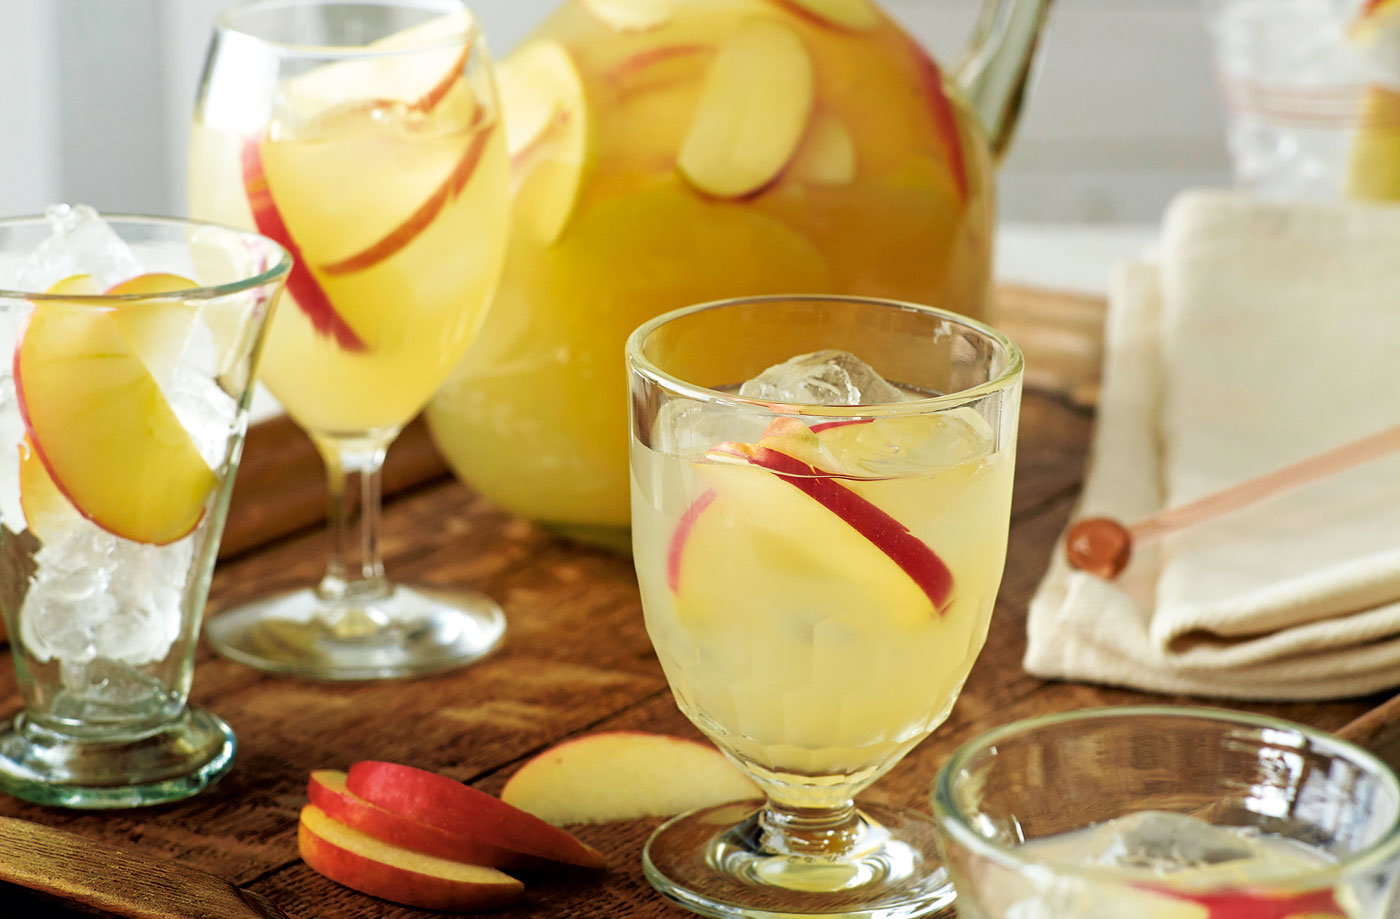 Apple, vodka and ginger beer cocktail recipe